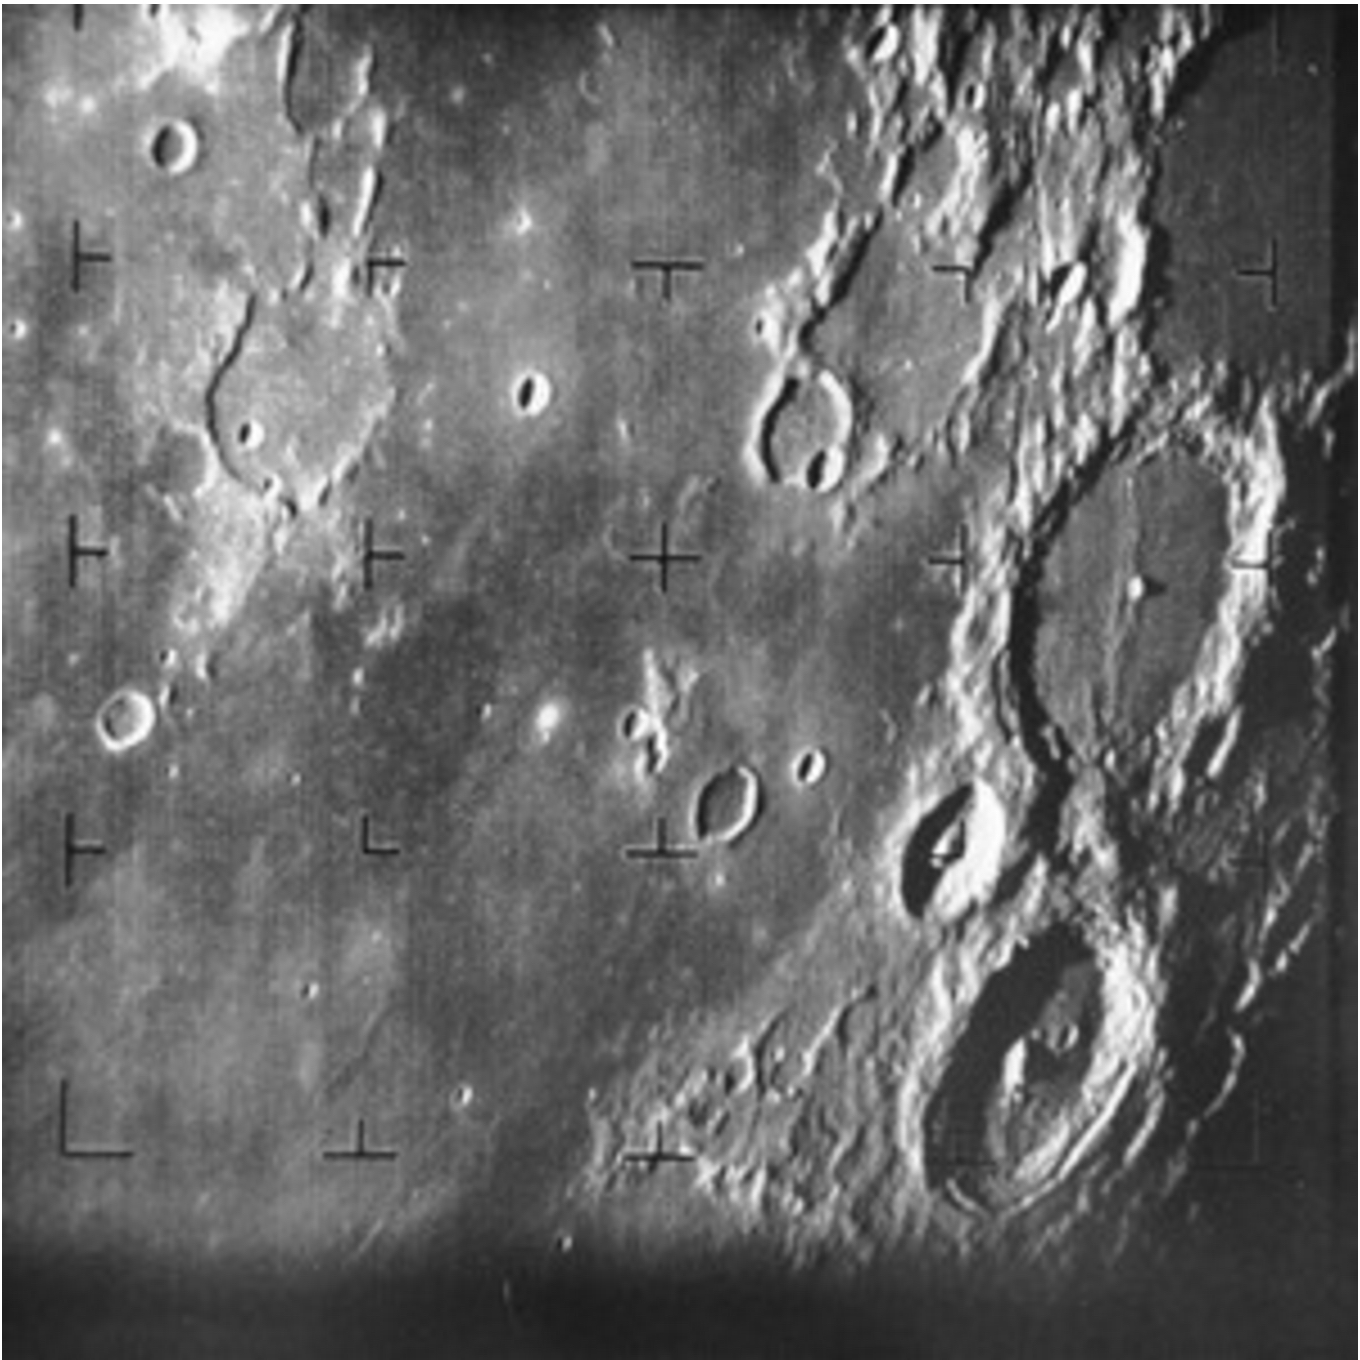 Ranger 7: First U.S. Close-Ups of the Moon